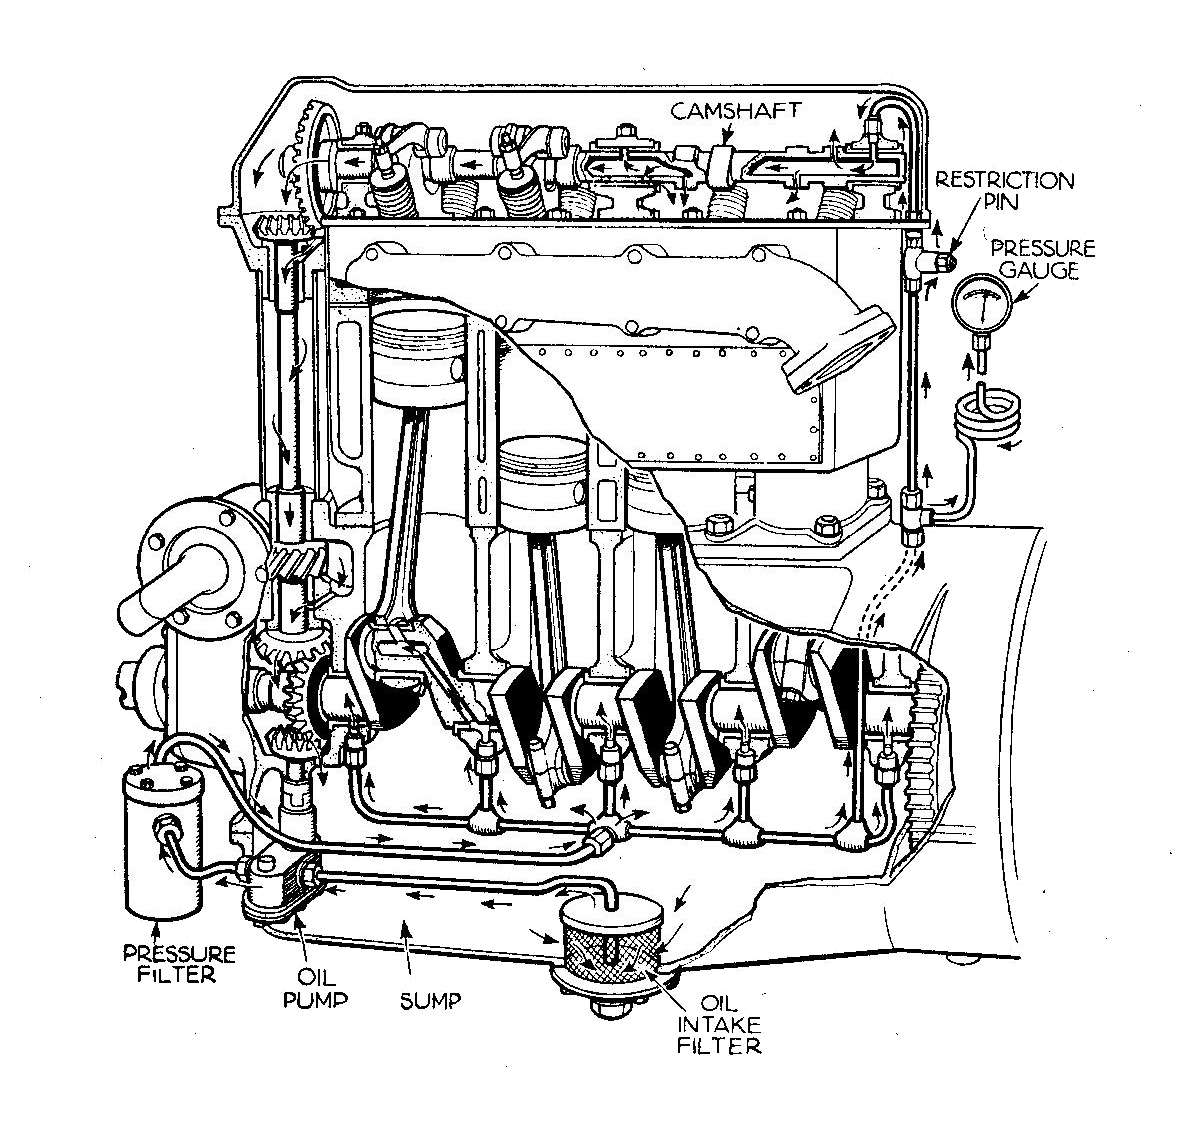 Oil Pump Internal Combustion Engine Wikipedia Breakdown Diagrams